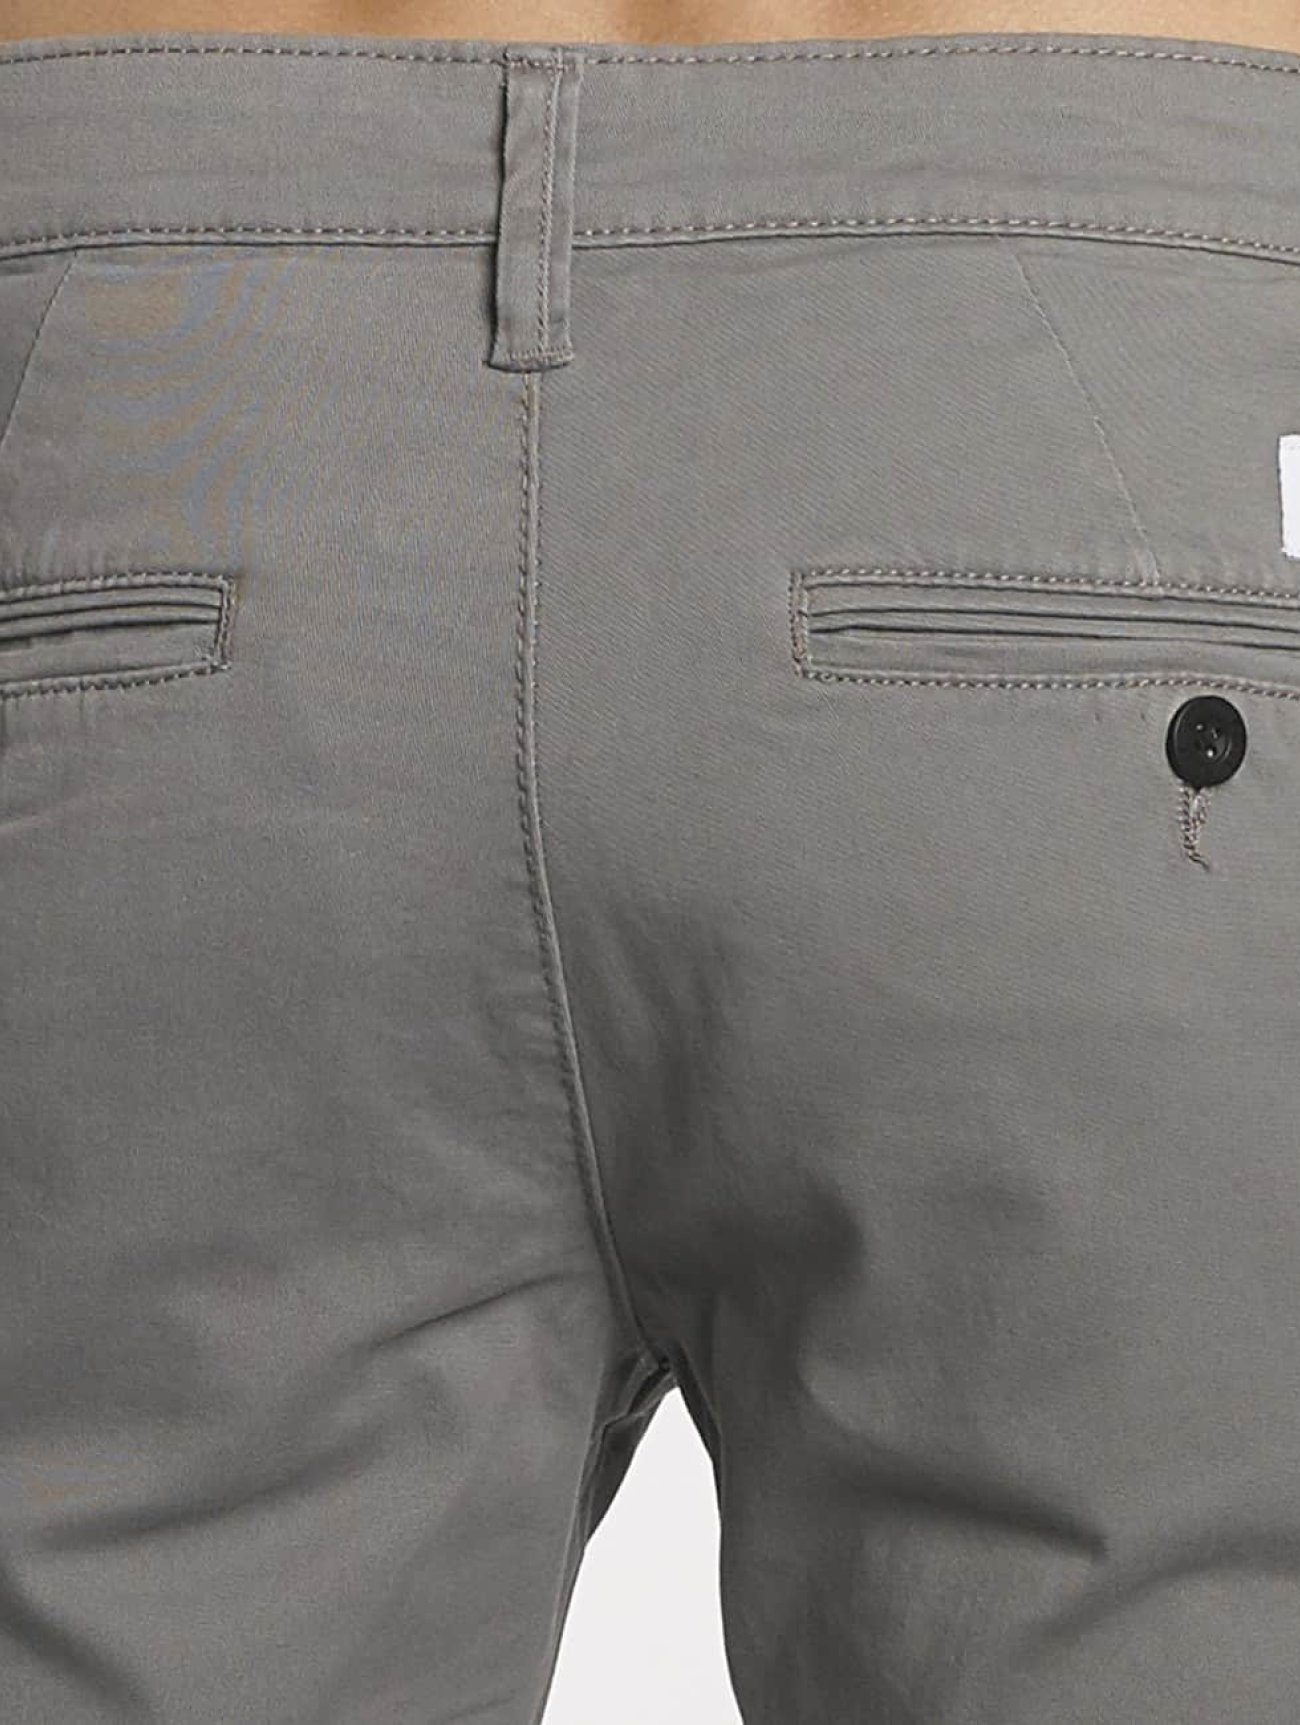 Reell Jeans  Flex Tapered  gris Homme Pantalon chino  473318 Homme Pantalons & Shorts